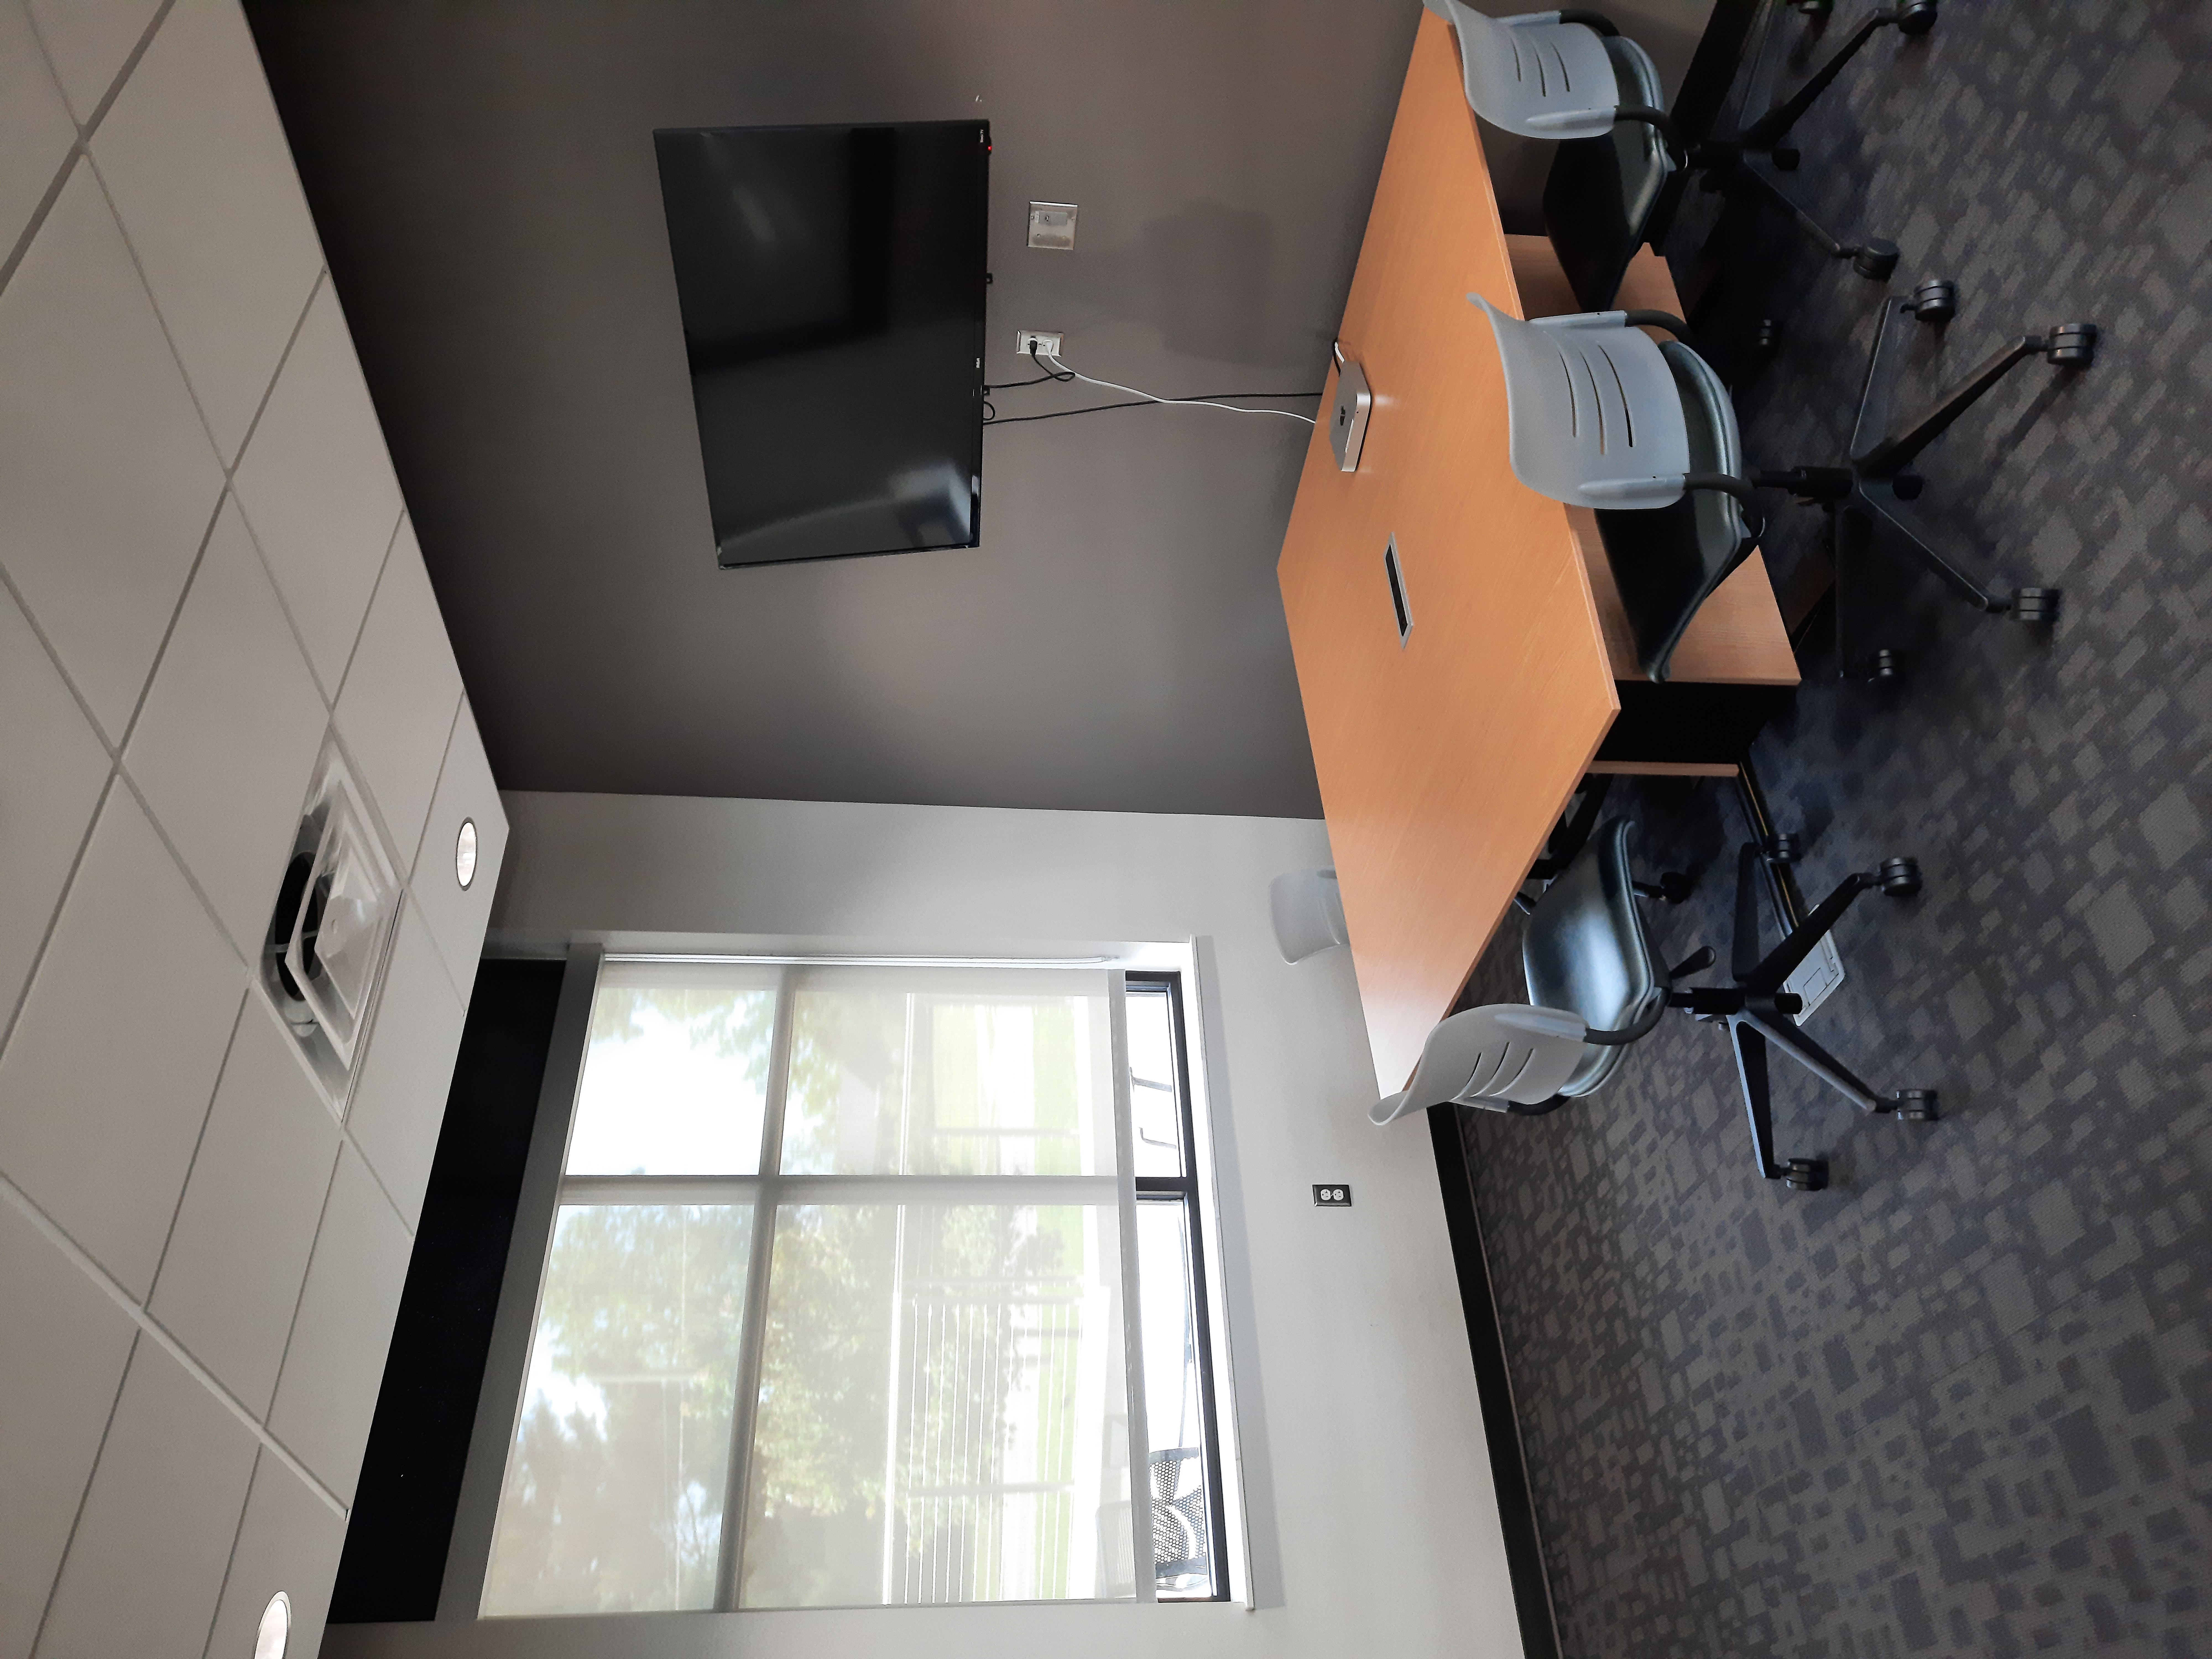 Photo of meeting room with one window. There are six chairs around a table. A tv is on the wall.